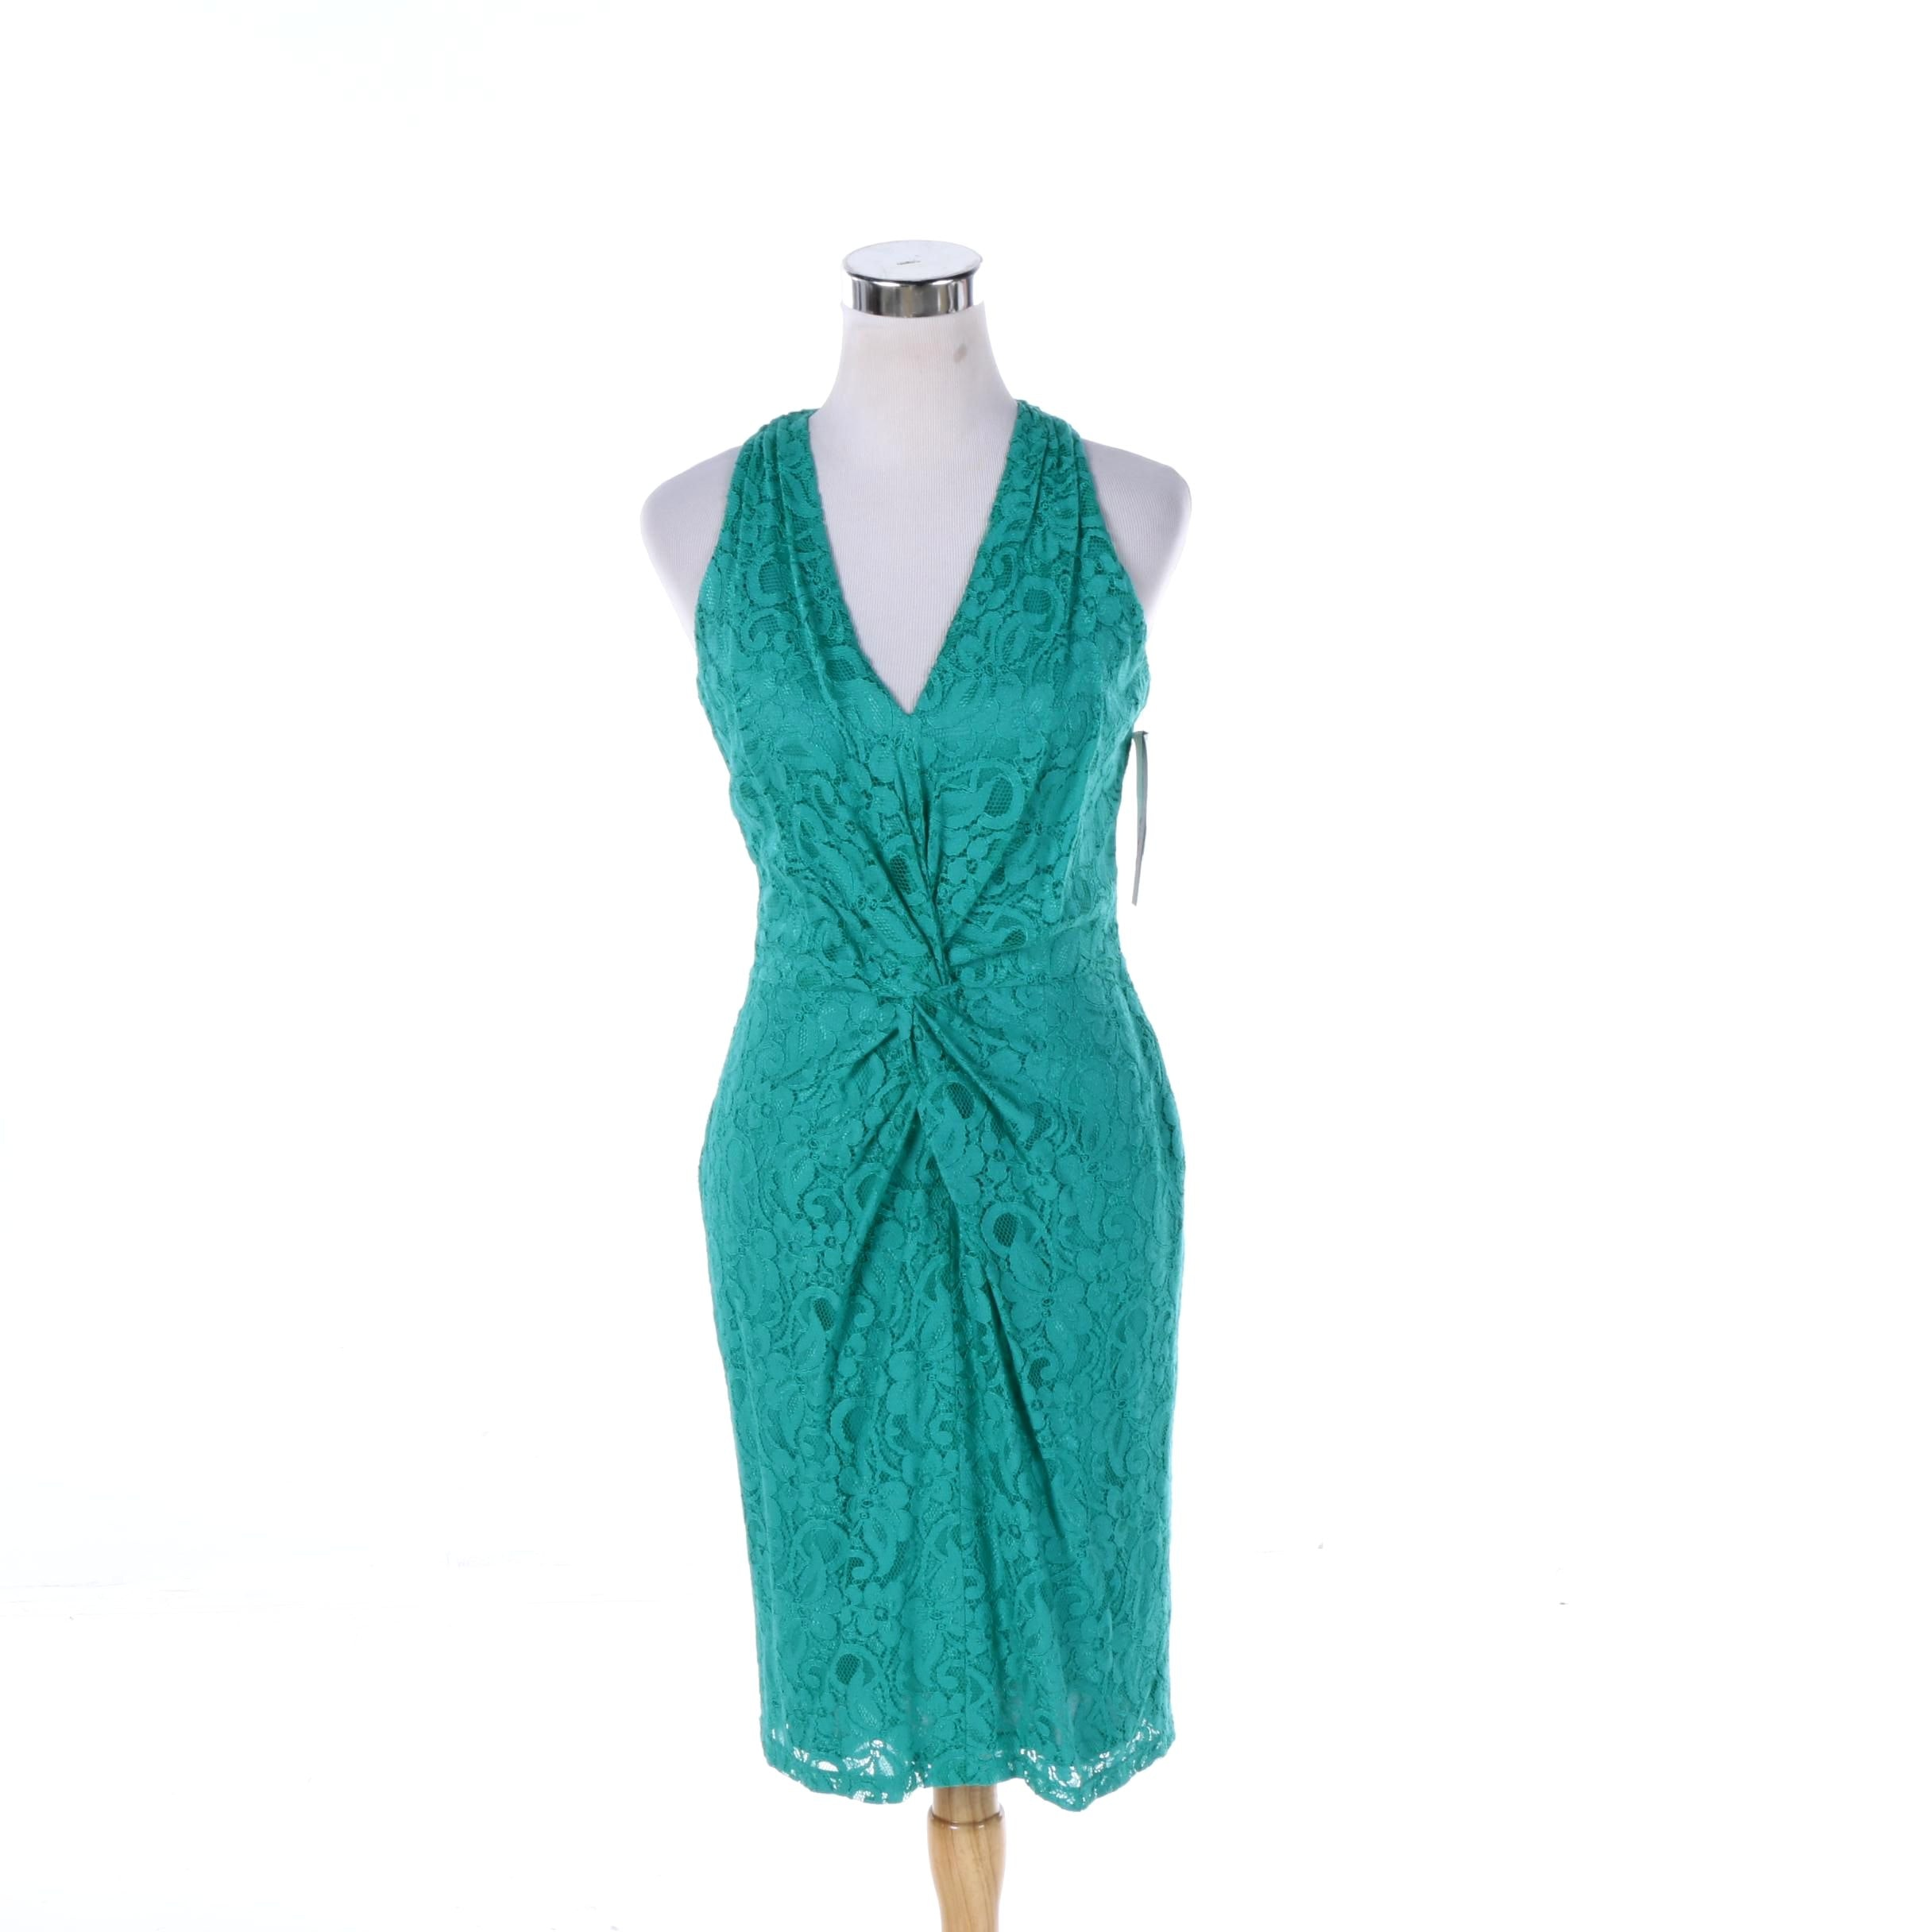 David Meister Sleeveless Turquoise Lace Dress